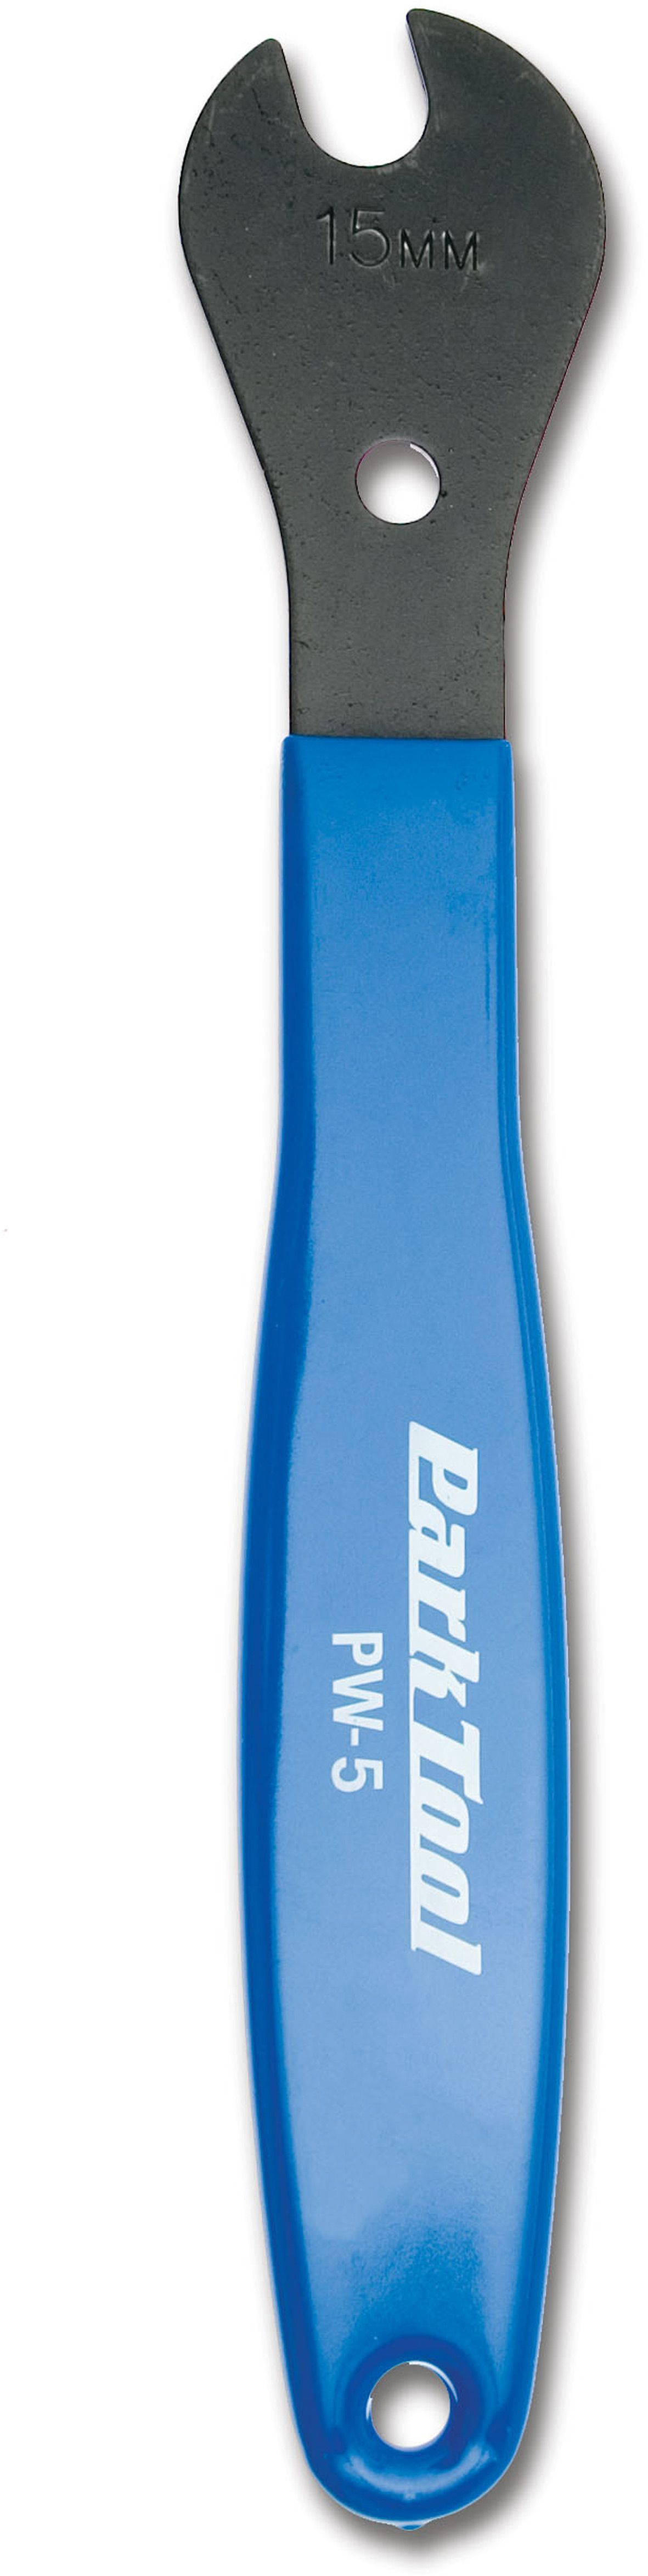 PARK TOOL TOOL PARK HOME PEDAL WRENCH QKPW5